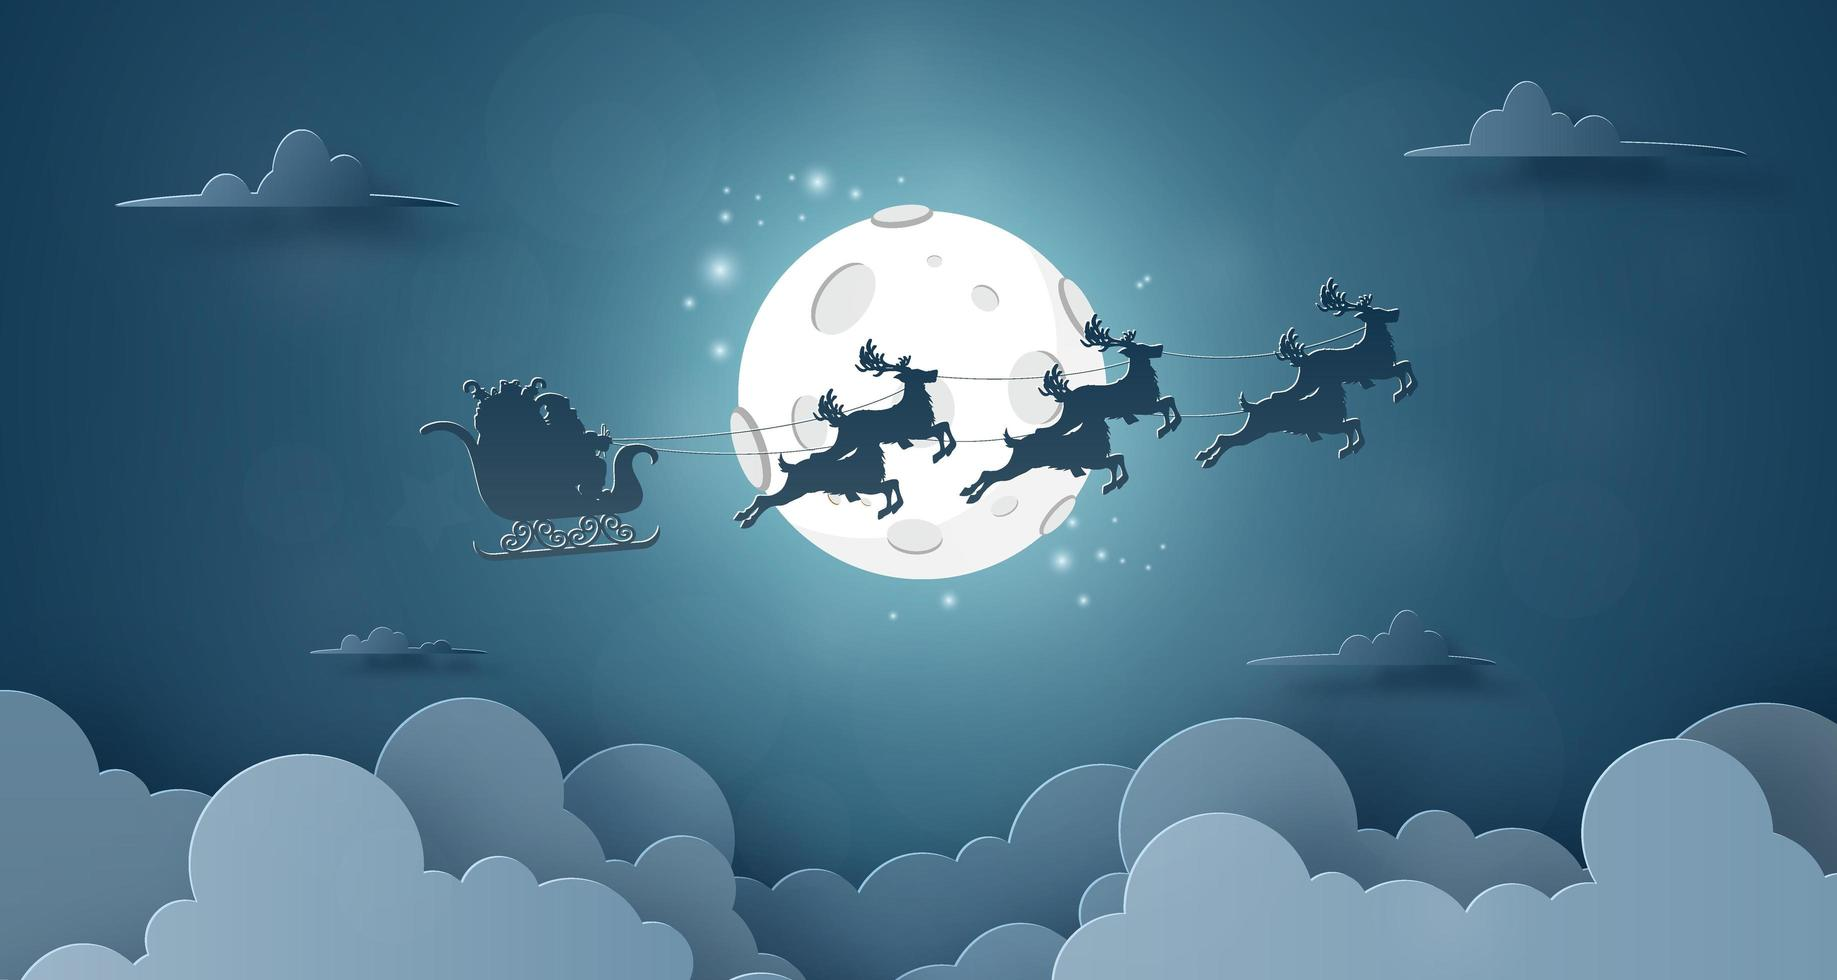 Santa Claus and reindeer flying on the sky with full moon night sky background vector